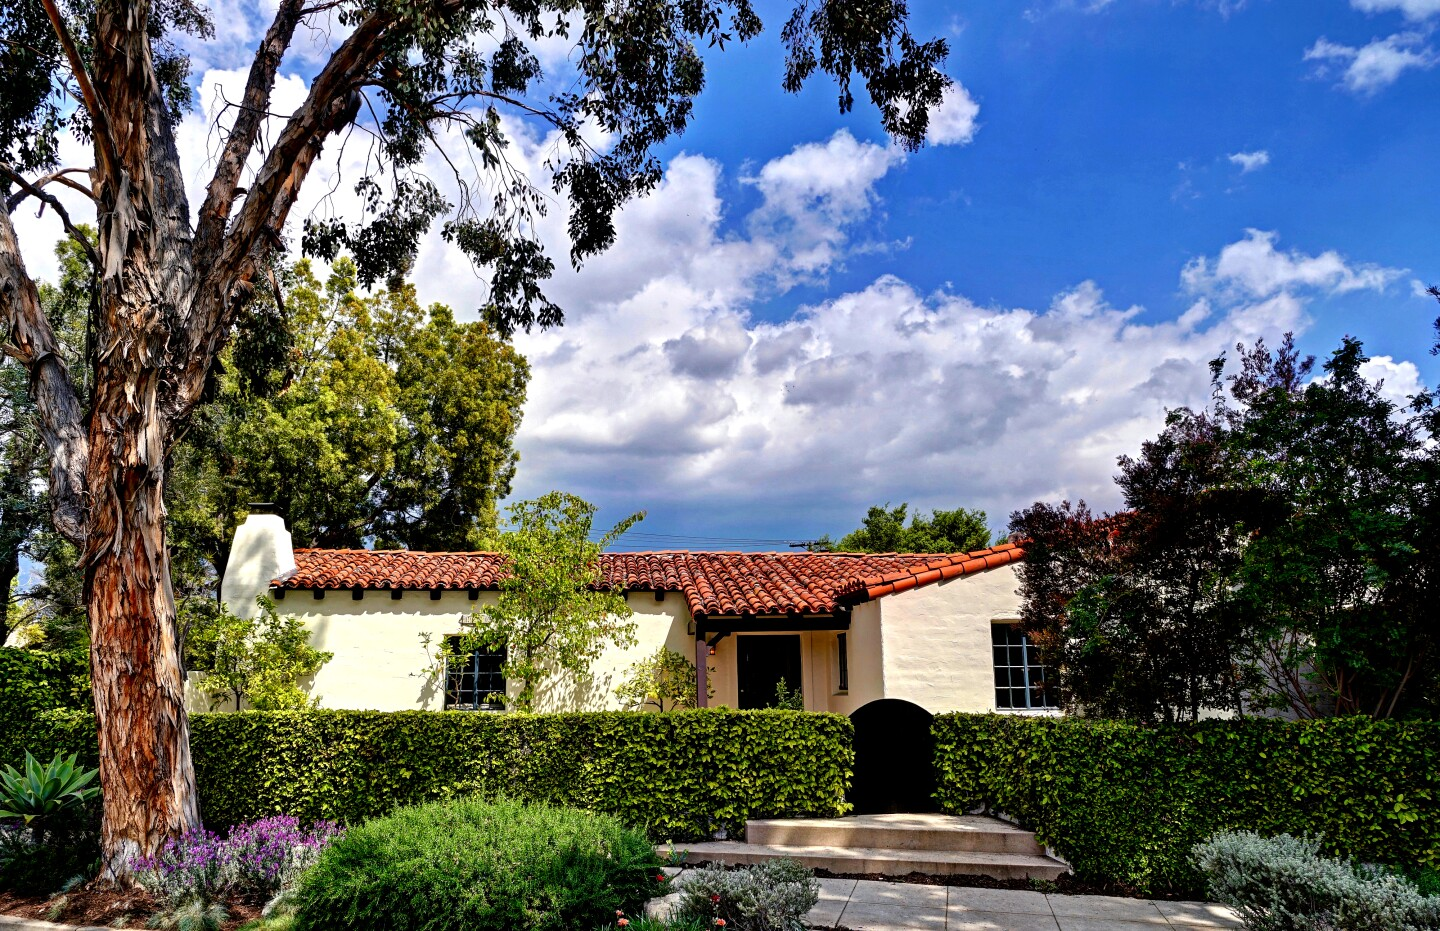 The Spanish Colonial Revival-style home, designed by George S. Hamrick, was built in 1925 buy local contractor Fritz Ruppel for his mother, Gertrude. The one-story residence, which has a clay tile roof and reinforced-concrete walls, was built at a cost of $7,000. Listed for $1.495 million, the charming residence opens to a grand living with cathedral-style ceilings, exposed beams and a wood-burning fireplace. The formal dining room sits off the kitchen, which has been updated with a stainless steel range and farmhouse-style sink. A French door in the kitchen leads outside to a small herb garden. The 1,825-square-foot floor plan has three bedrooms and two bathrooms. Tilework in one of the two bathrooms is reminiscent of the work of master craftsman Earnest Batchelder.